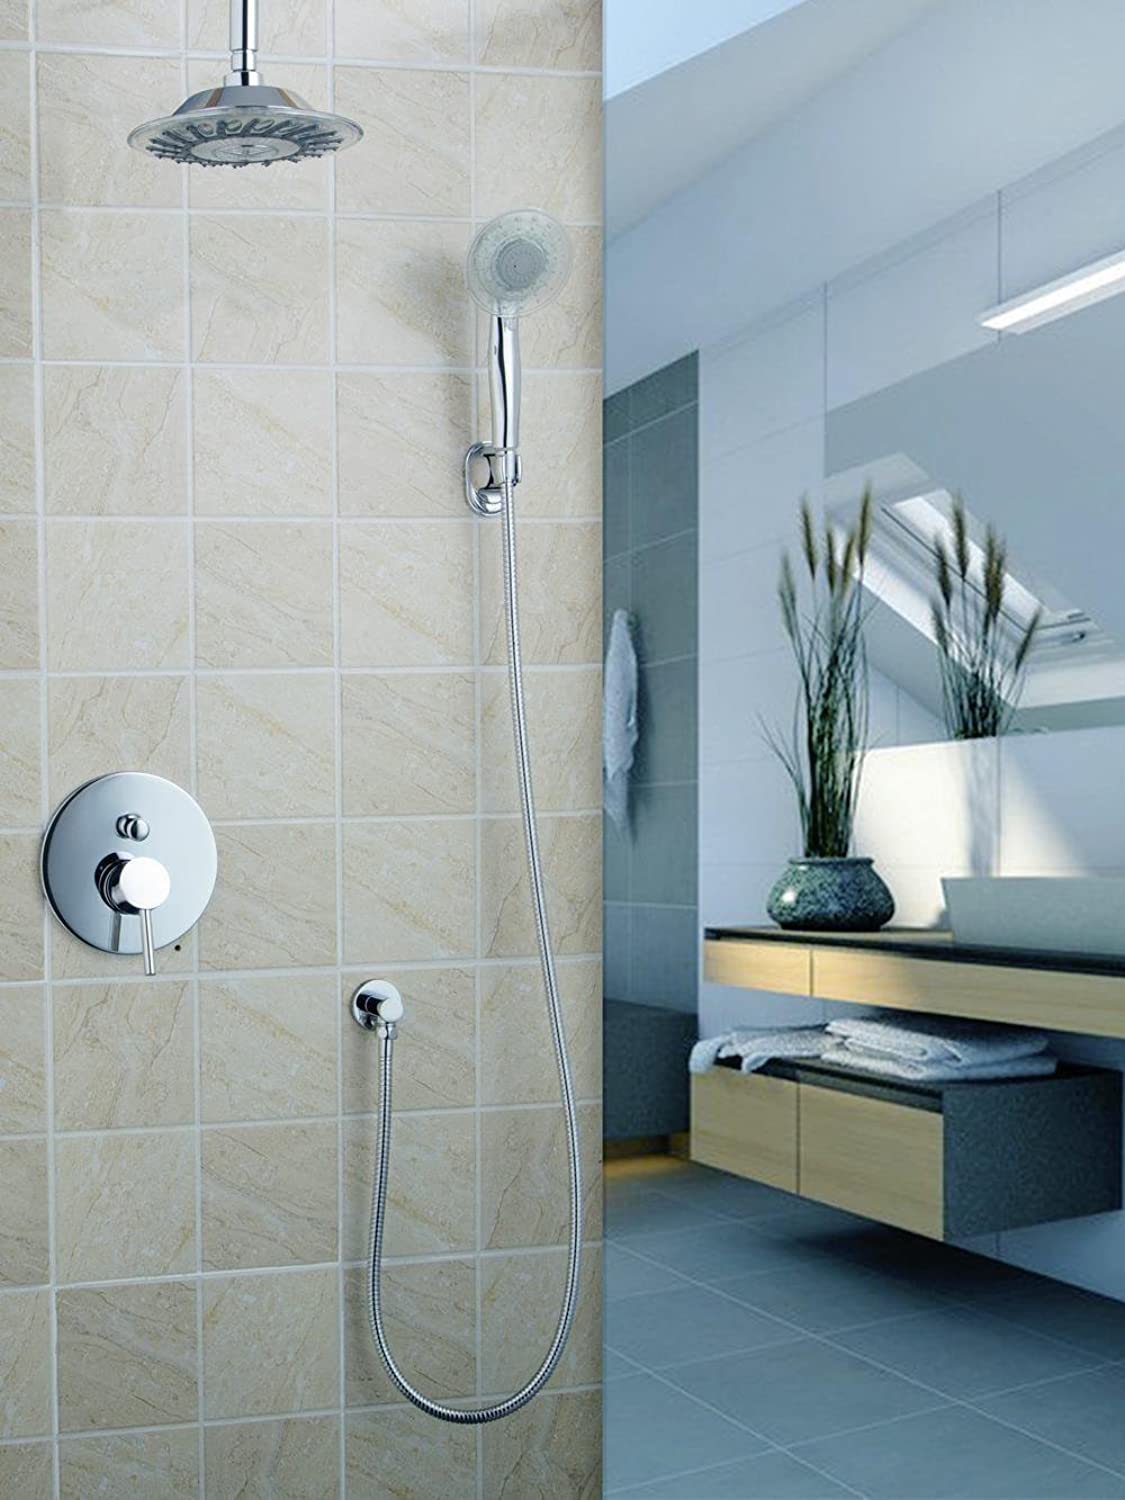 Ceiling Wall 8  Shower Head Bathroom Rainfall 50243-22A Bath Tub Chrome Brass Sink Faucets,Mixers & Tap Shower Set Torneira,White